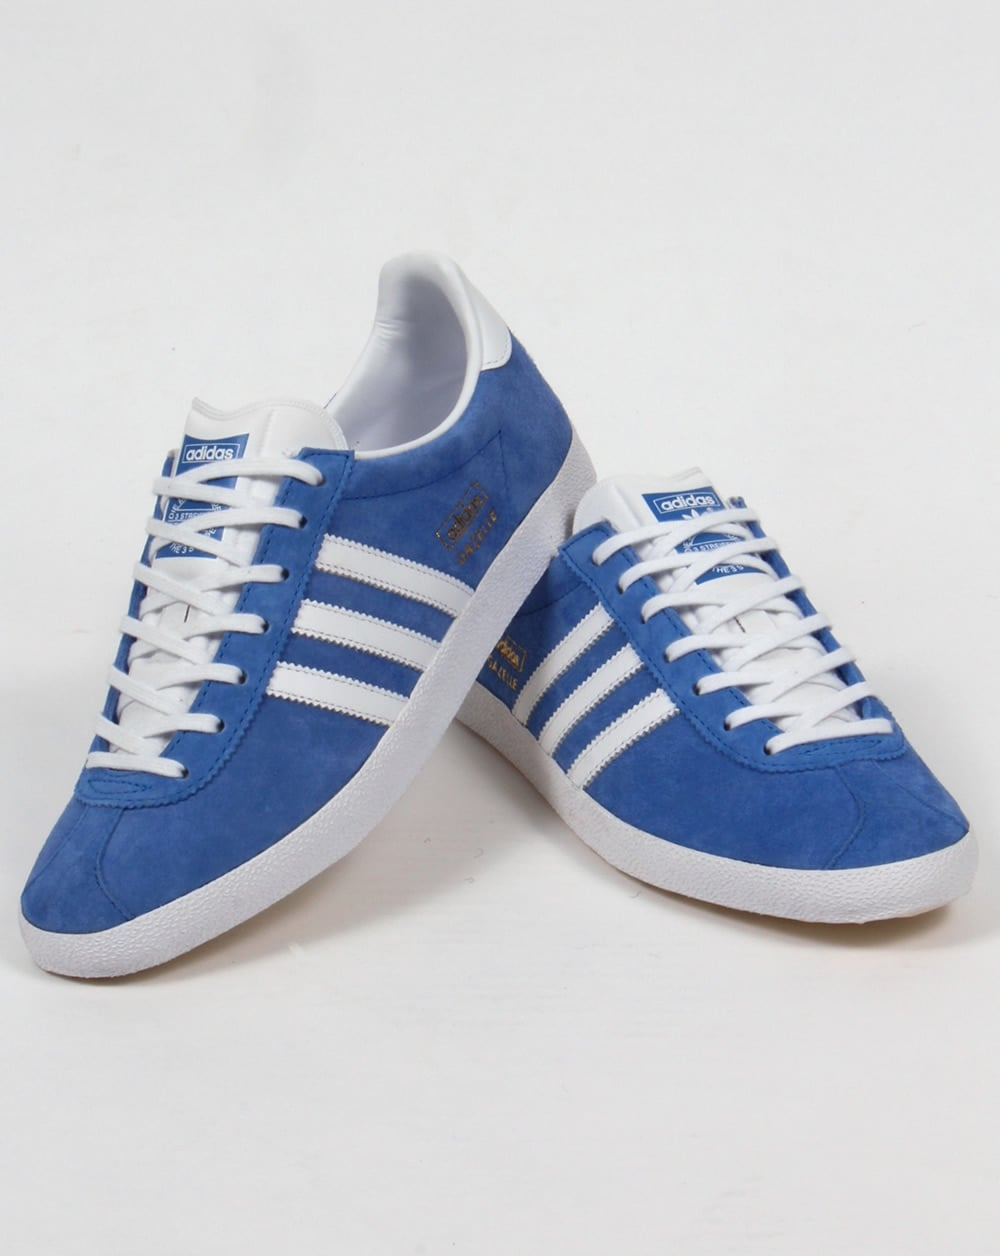 Adidas Gazelle OG Trainers Royal Blue/white